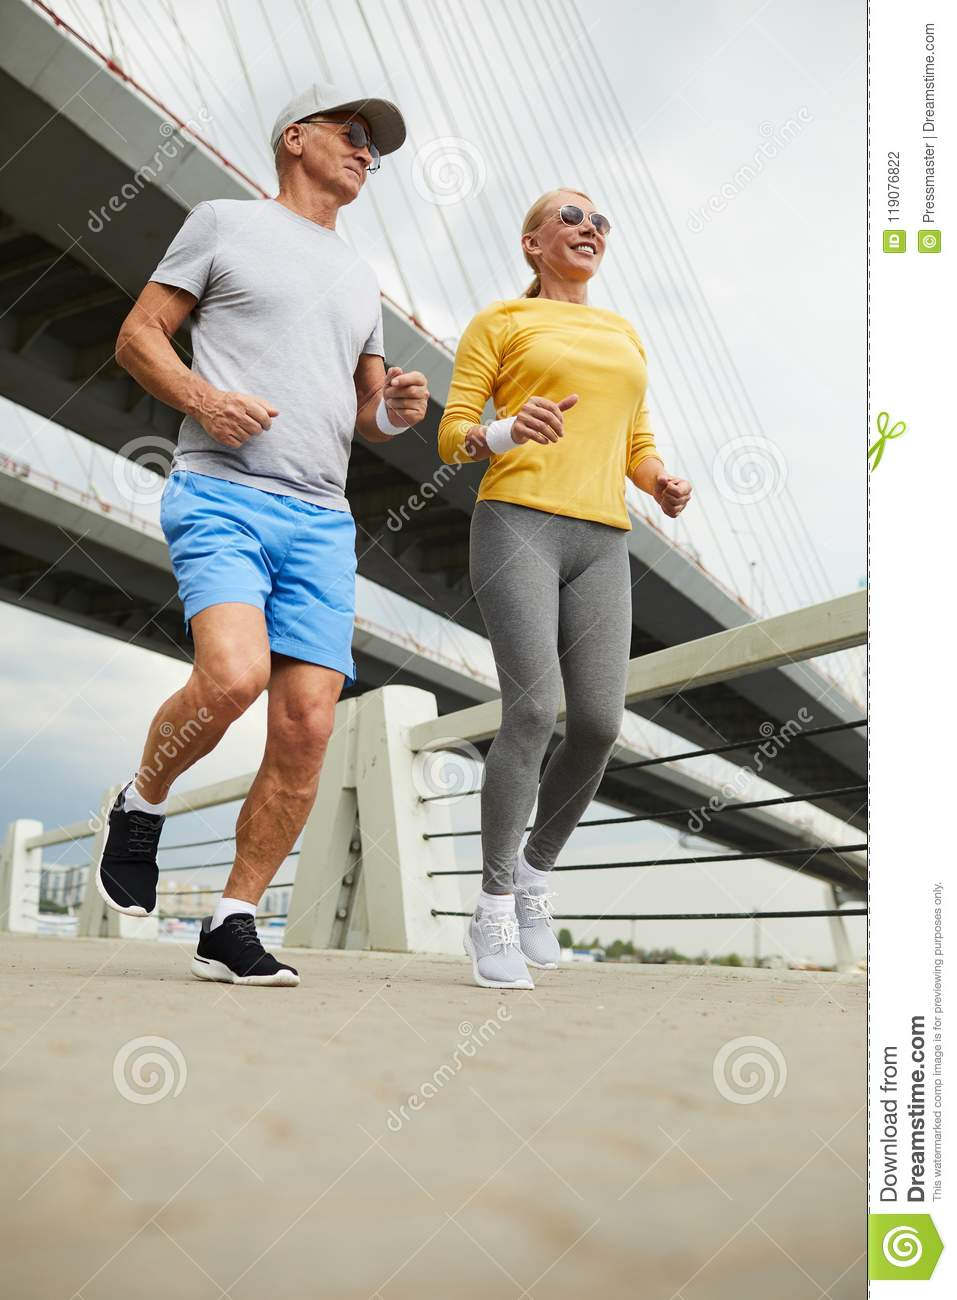 best selling factory outlets greatvarieties Seniors jogging stock photo. Image of mature, couple - 119076822